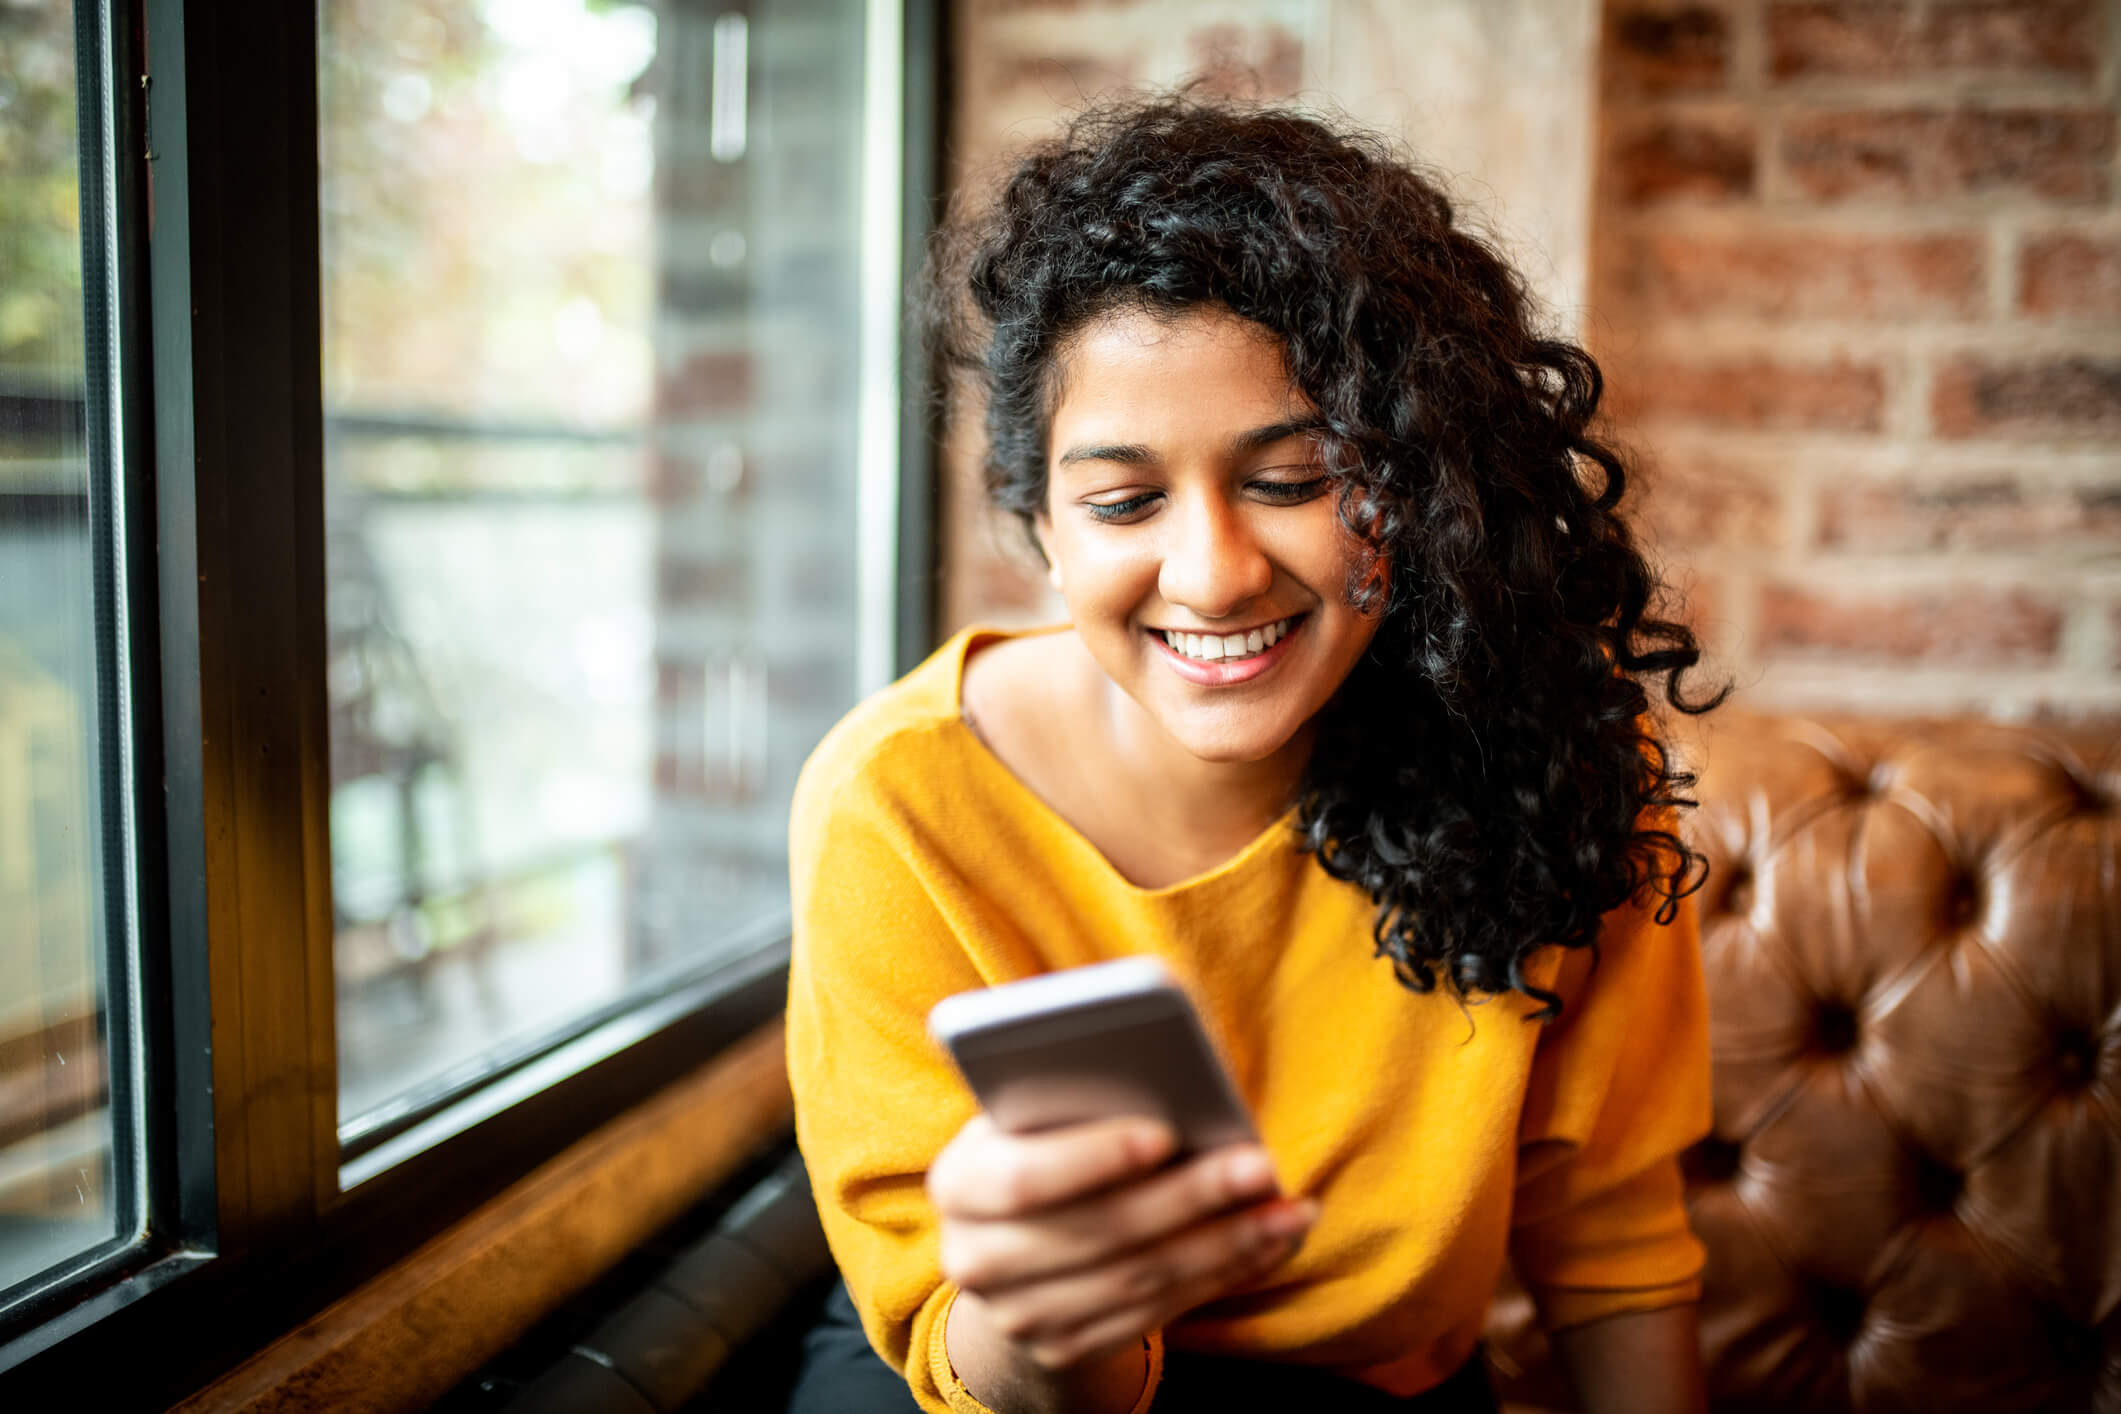 A woman with curly, dark hair and a yellow shirt looks at her phone and smiles